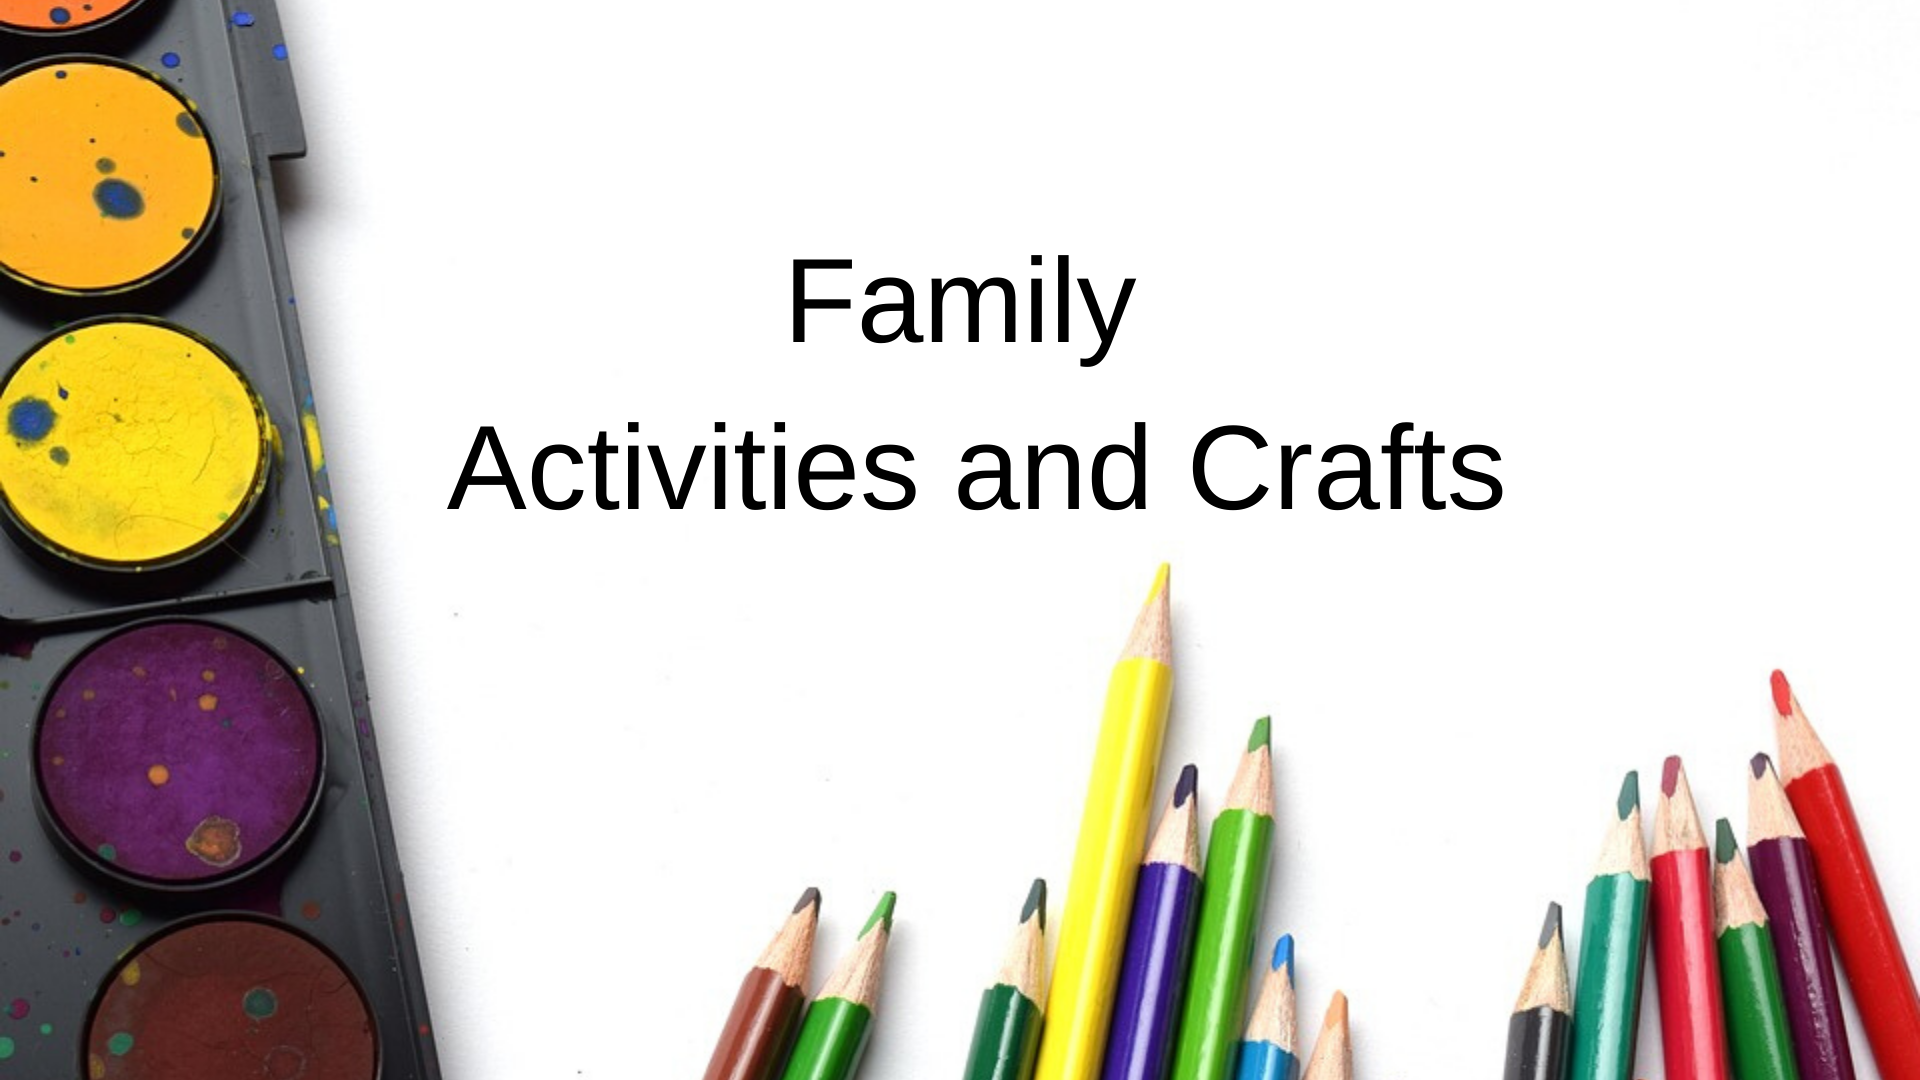 Family Activity and Craft